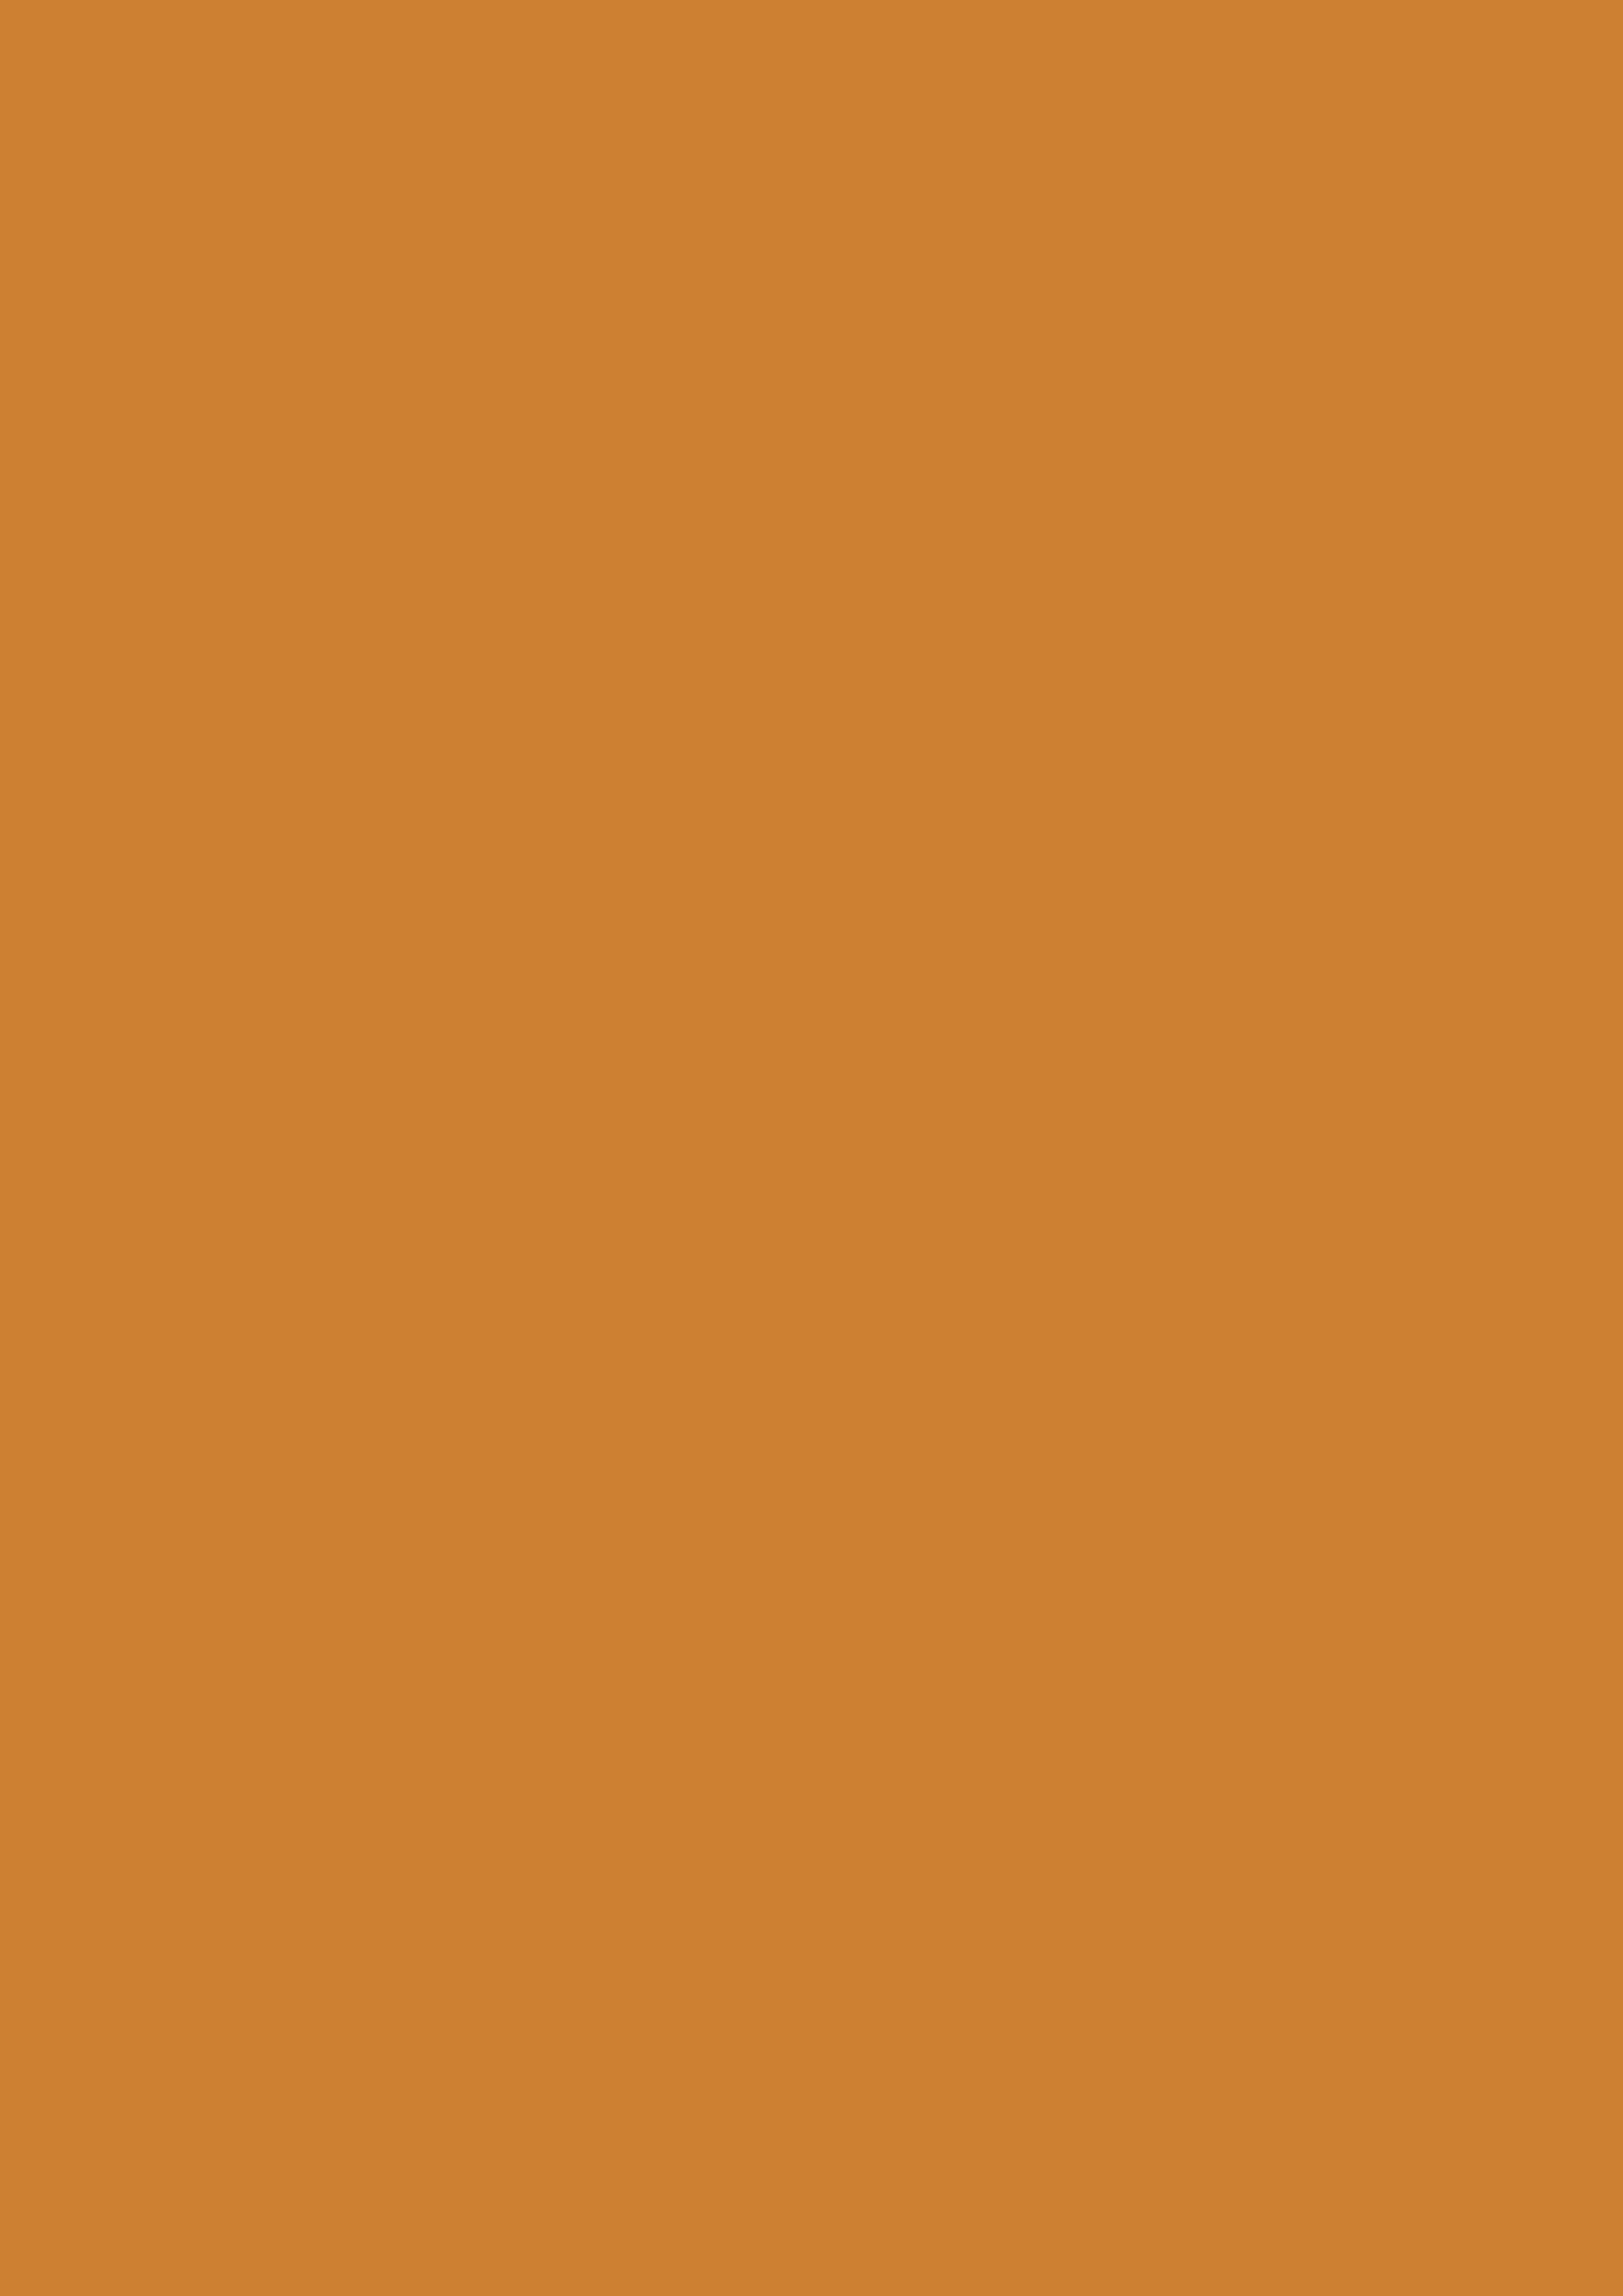 2480x3508 Bronze Solid Color Background